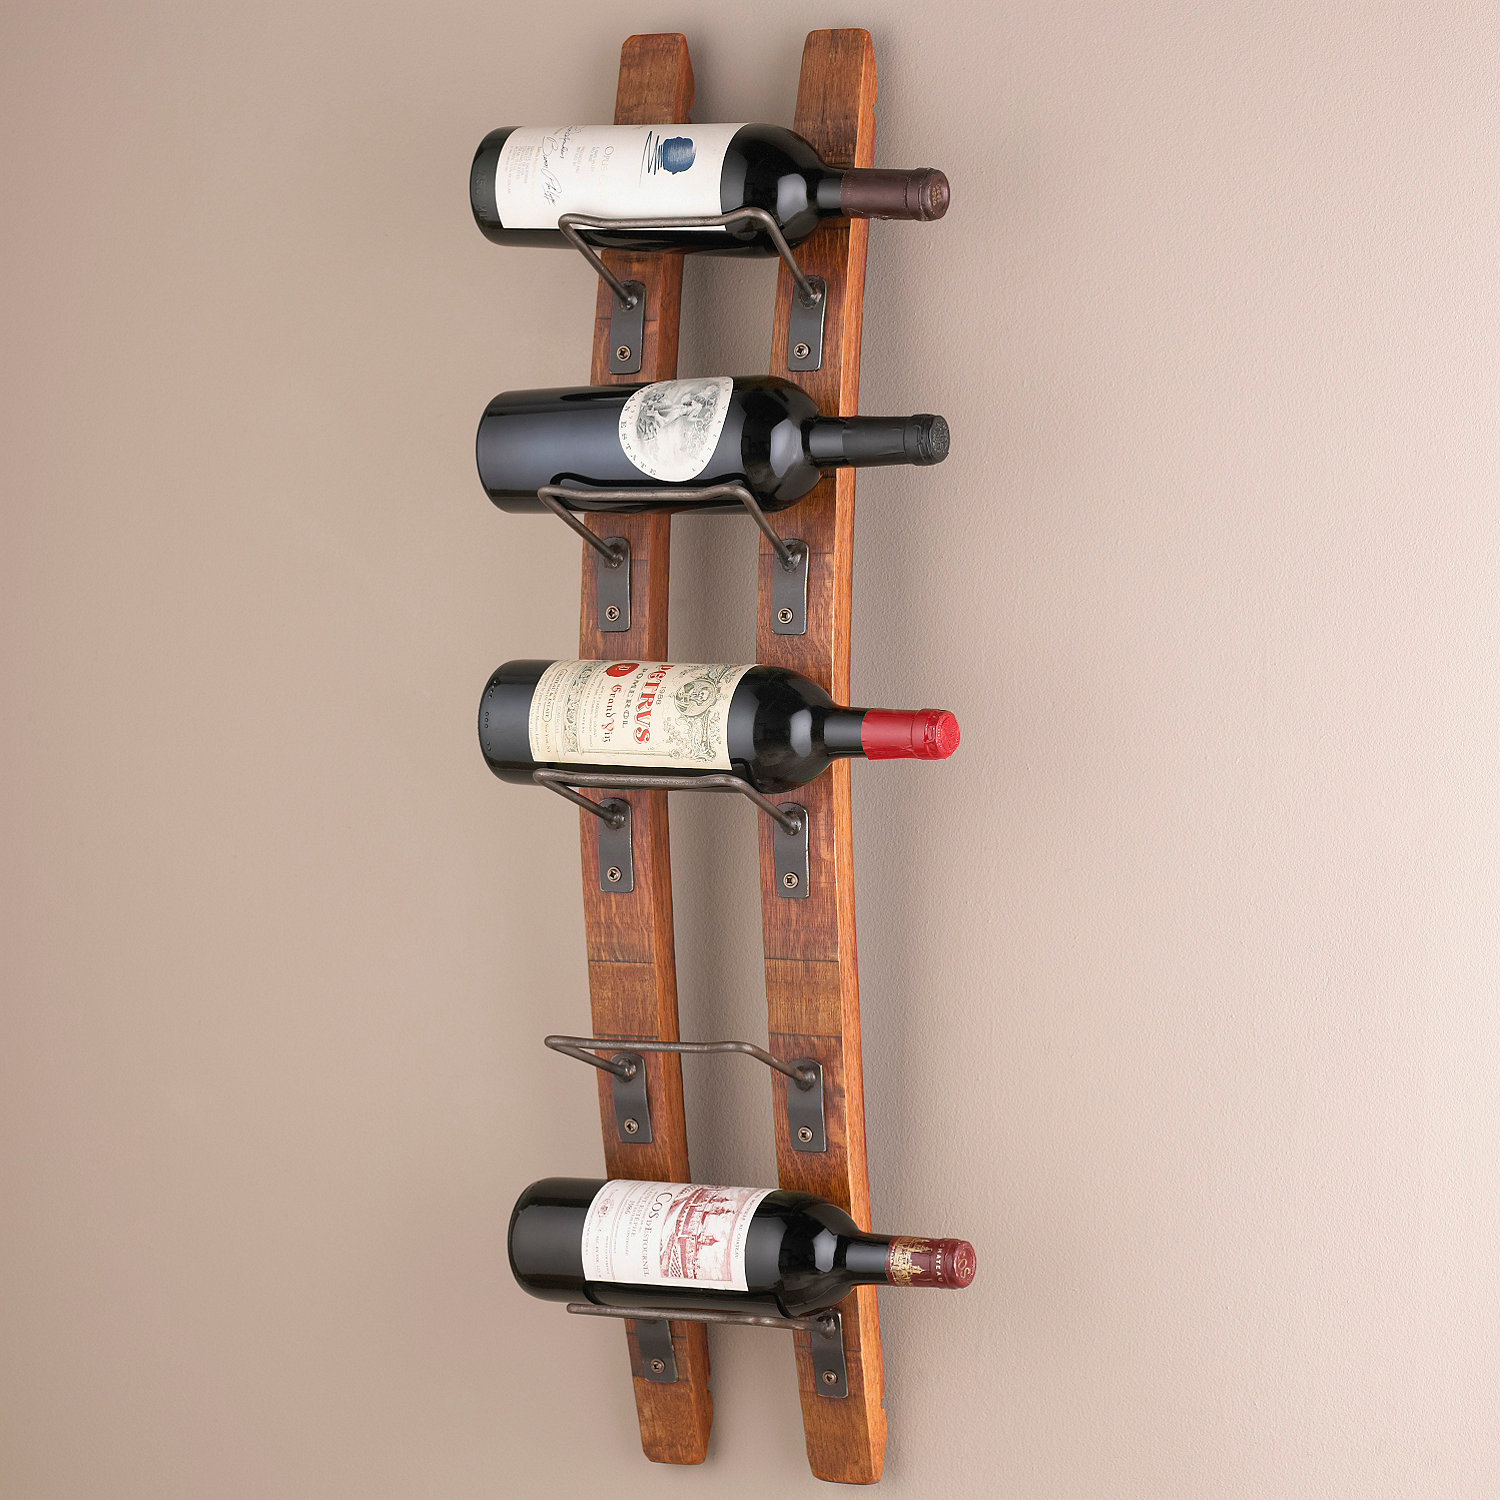 Wall Mounted Wine Rack Systems & Hanging Wine Racks - Wine Enthusiast